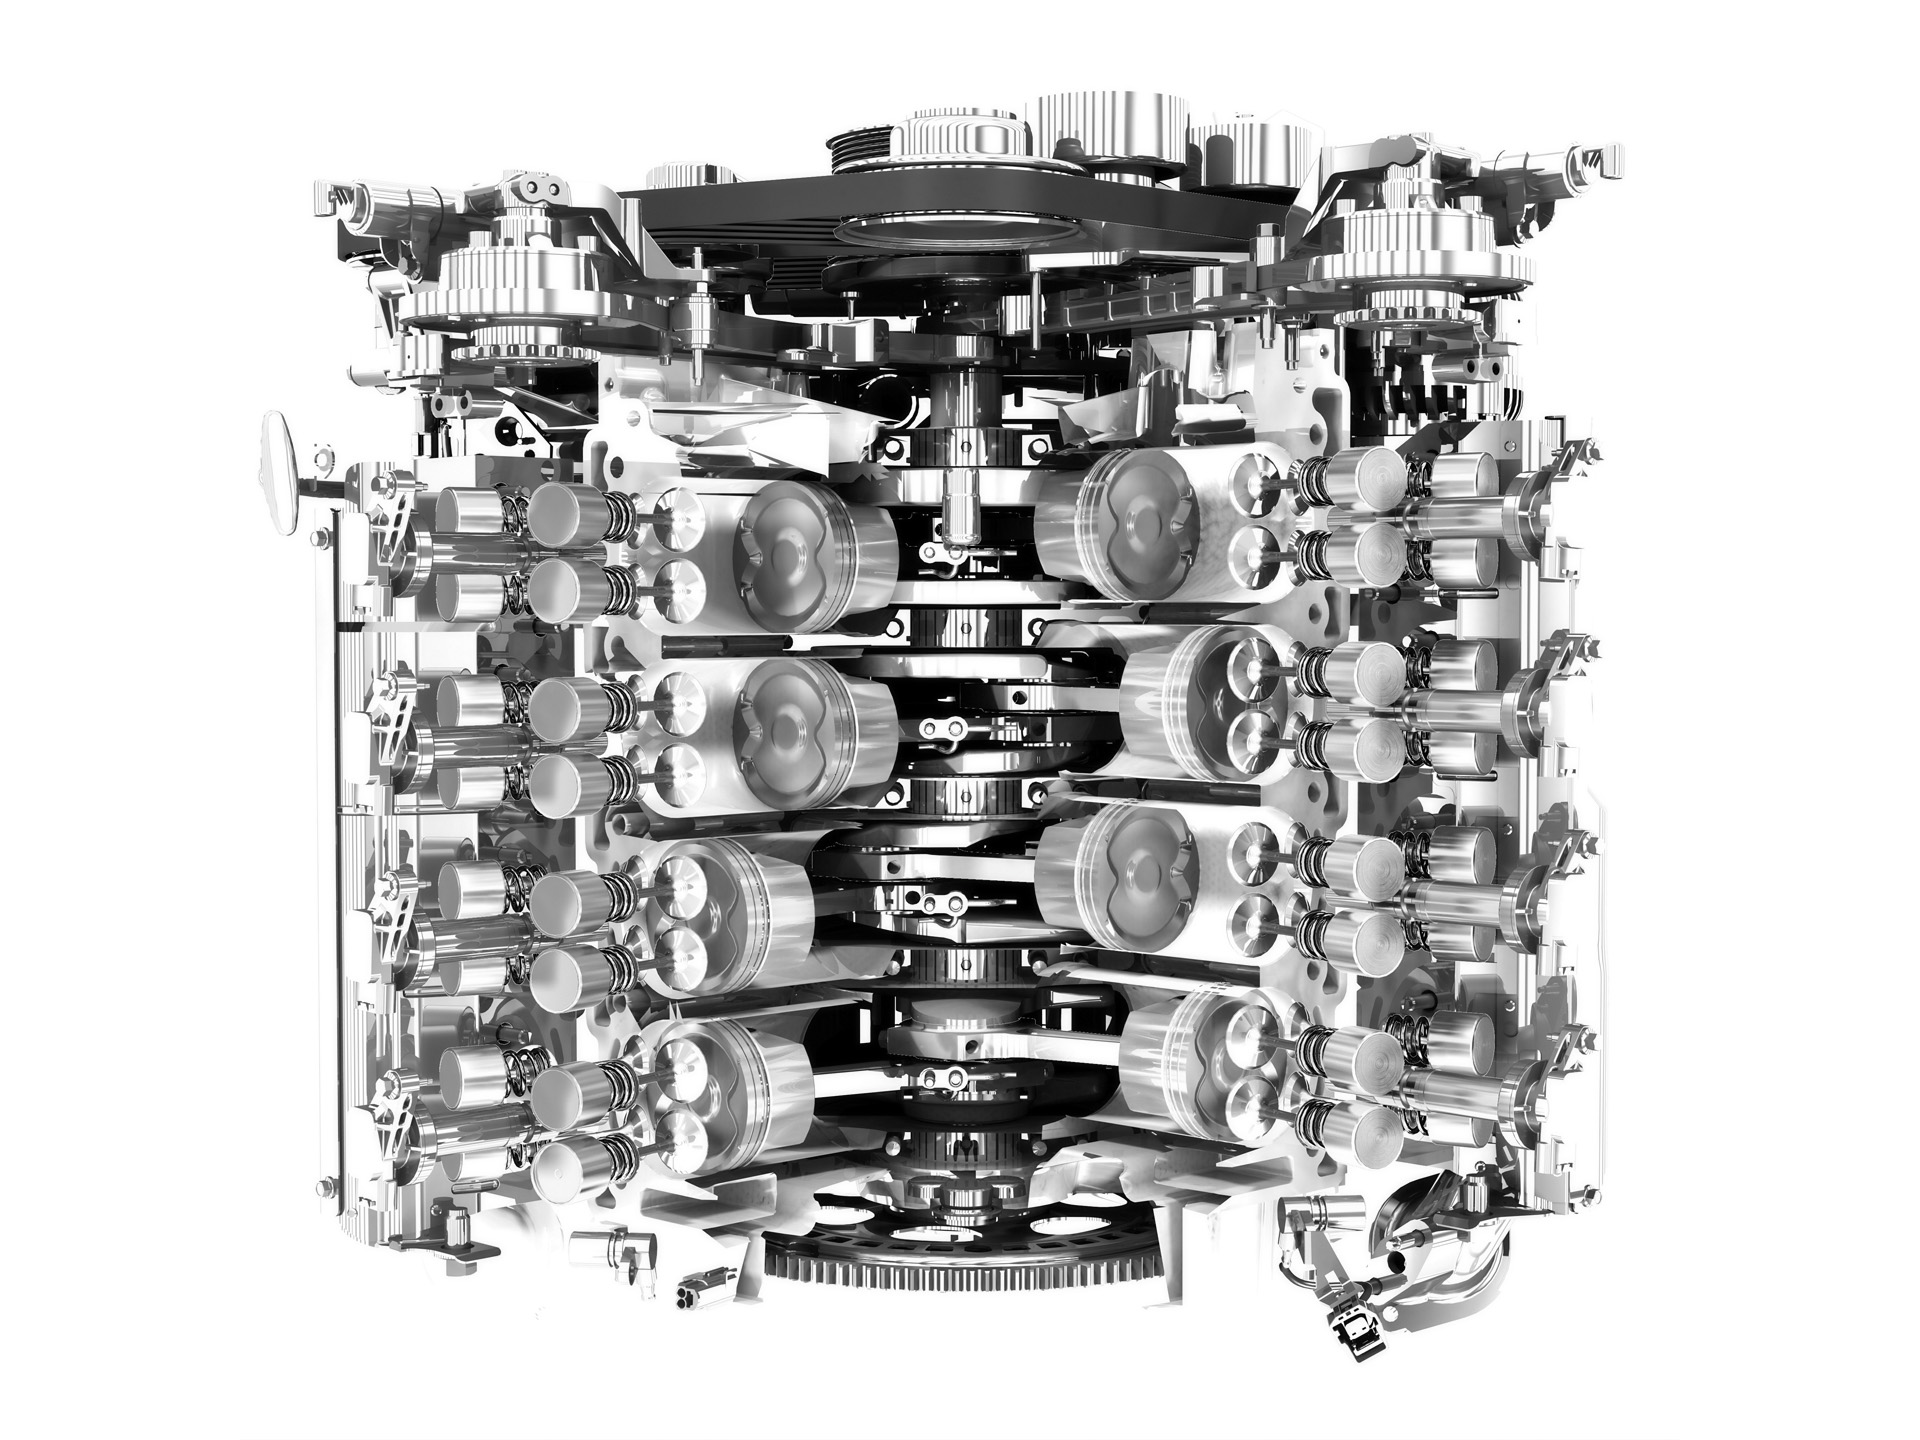 Sample C1260 Engine